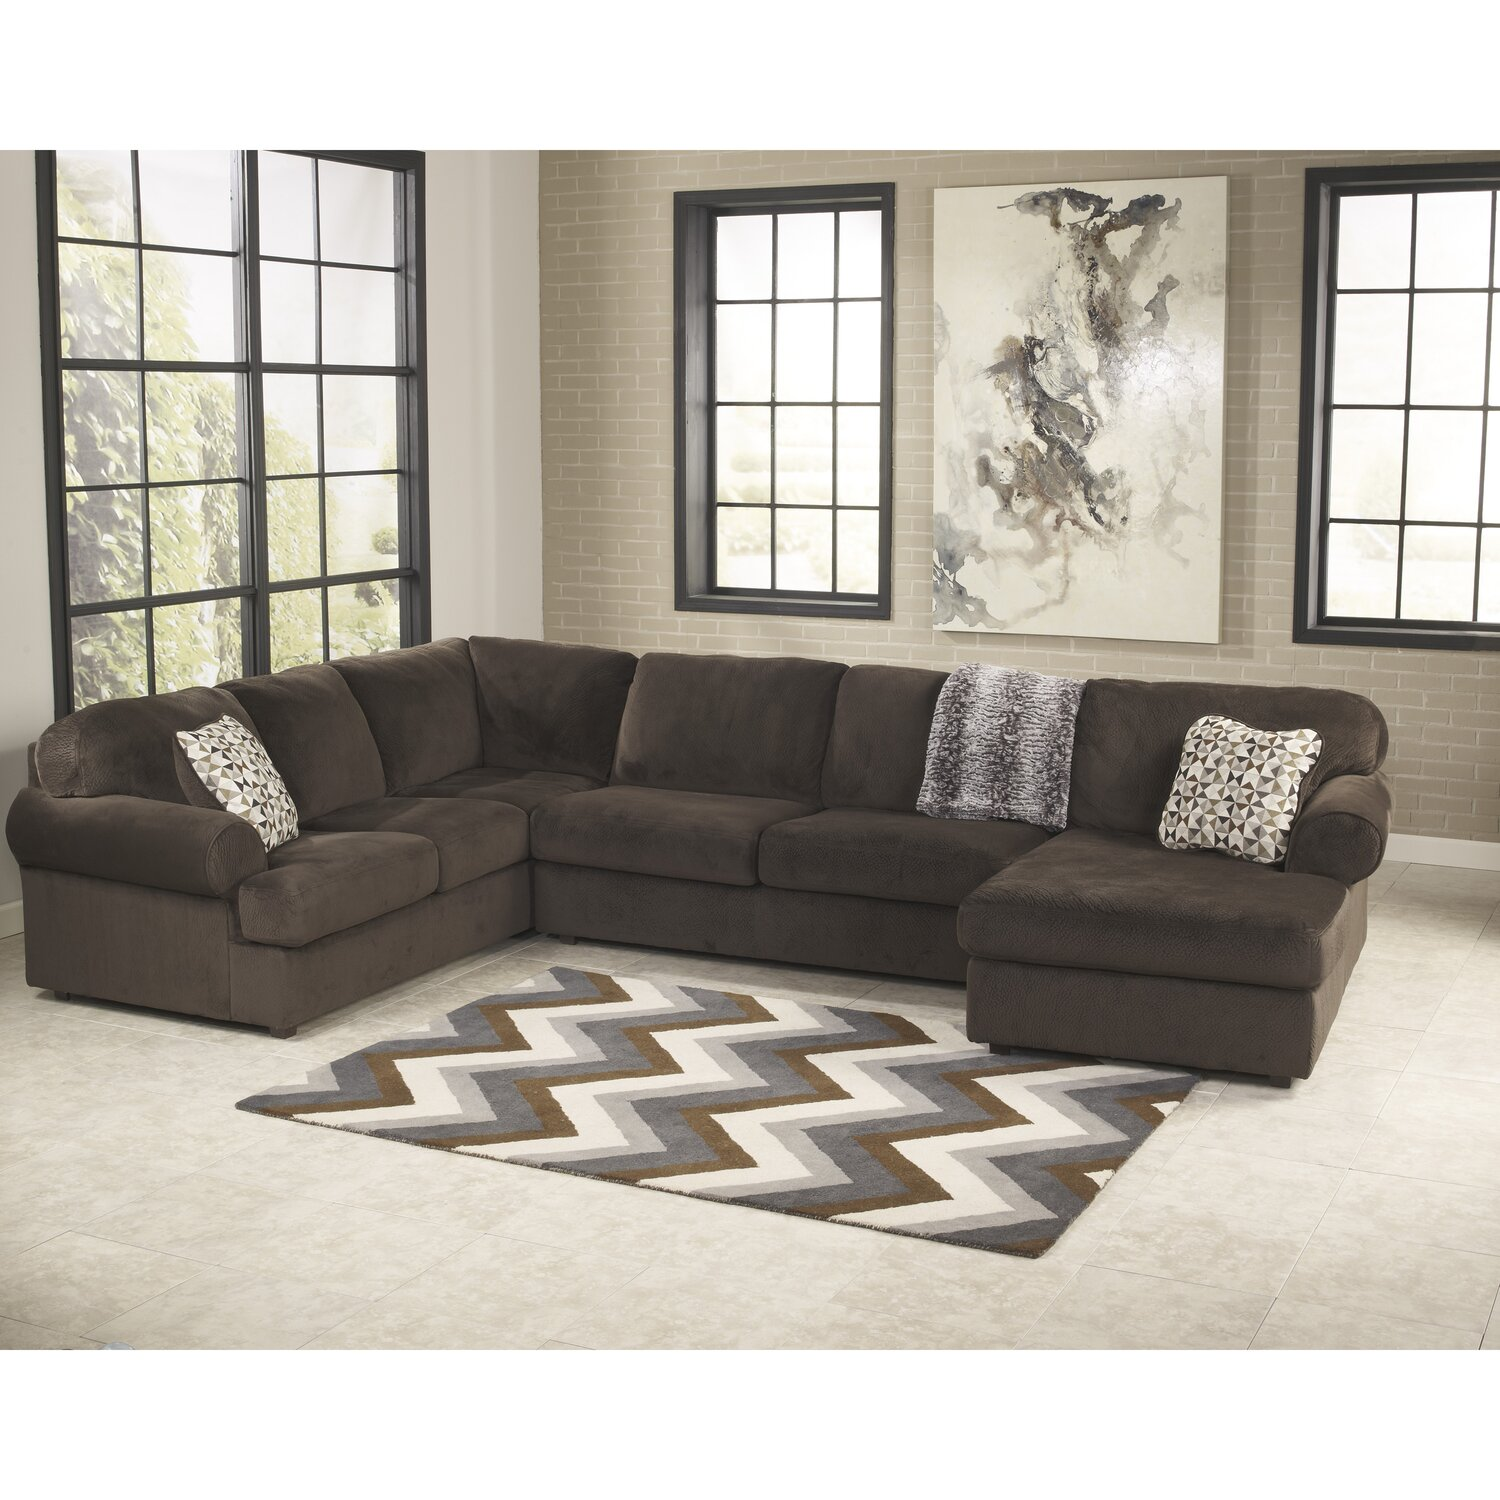 Jessa Place Sectional Sofa by Flash Furniture, Chocolate Fabric